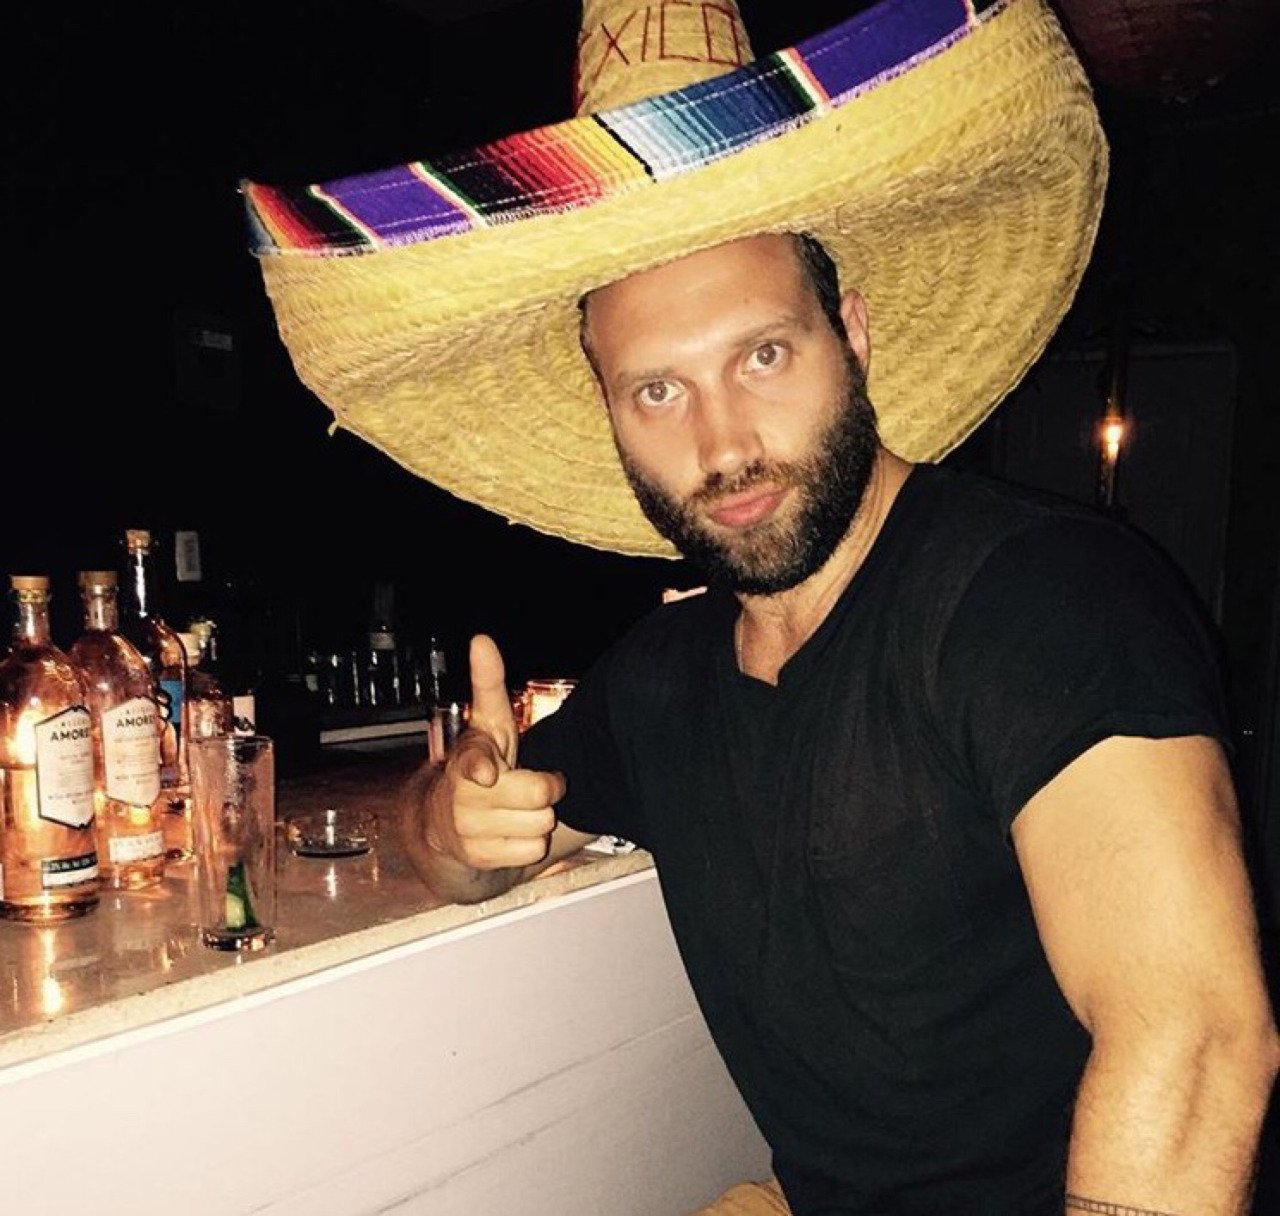 The entire BMD team would like to wish a very happy birthday to Jai Courtney.